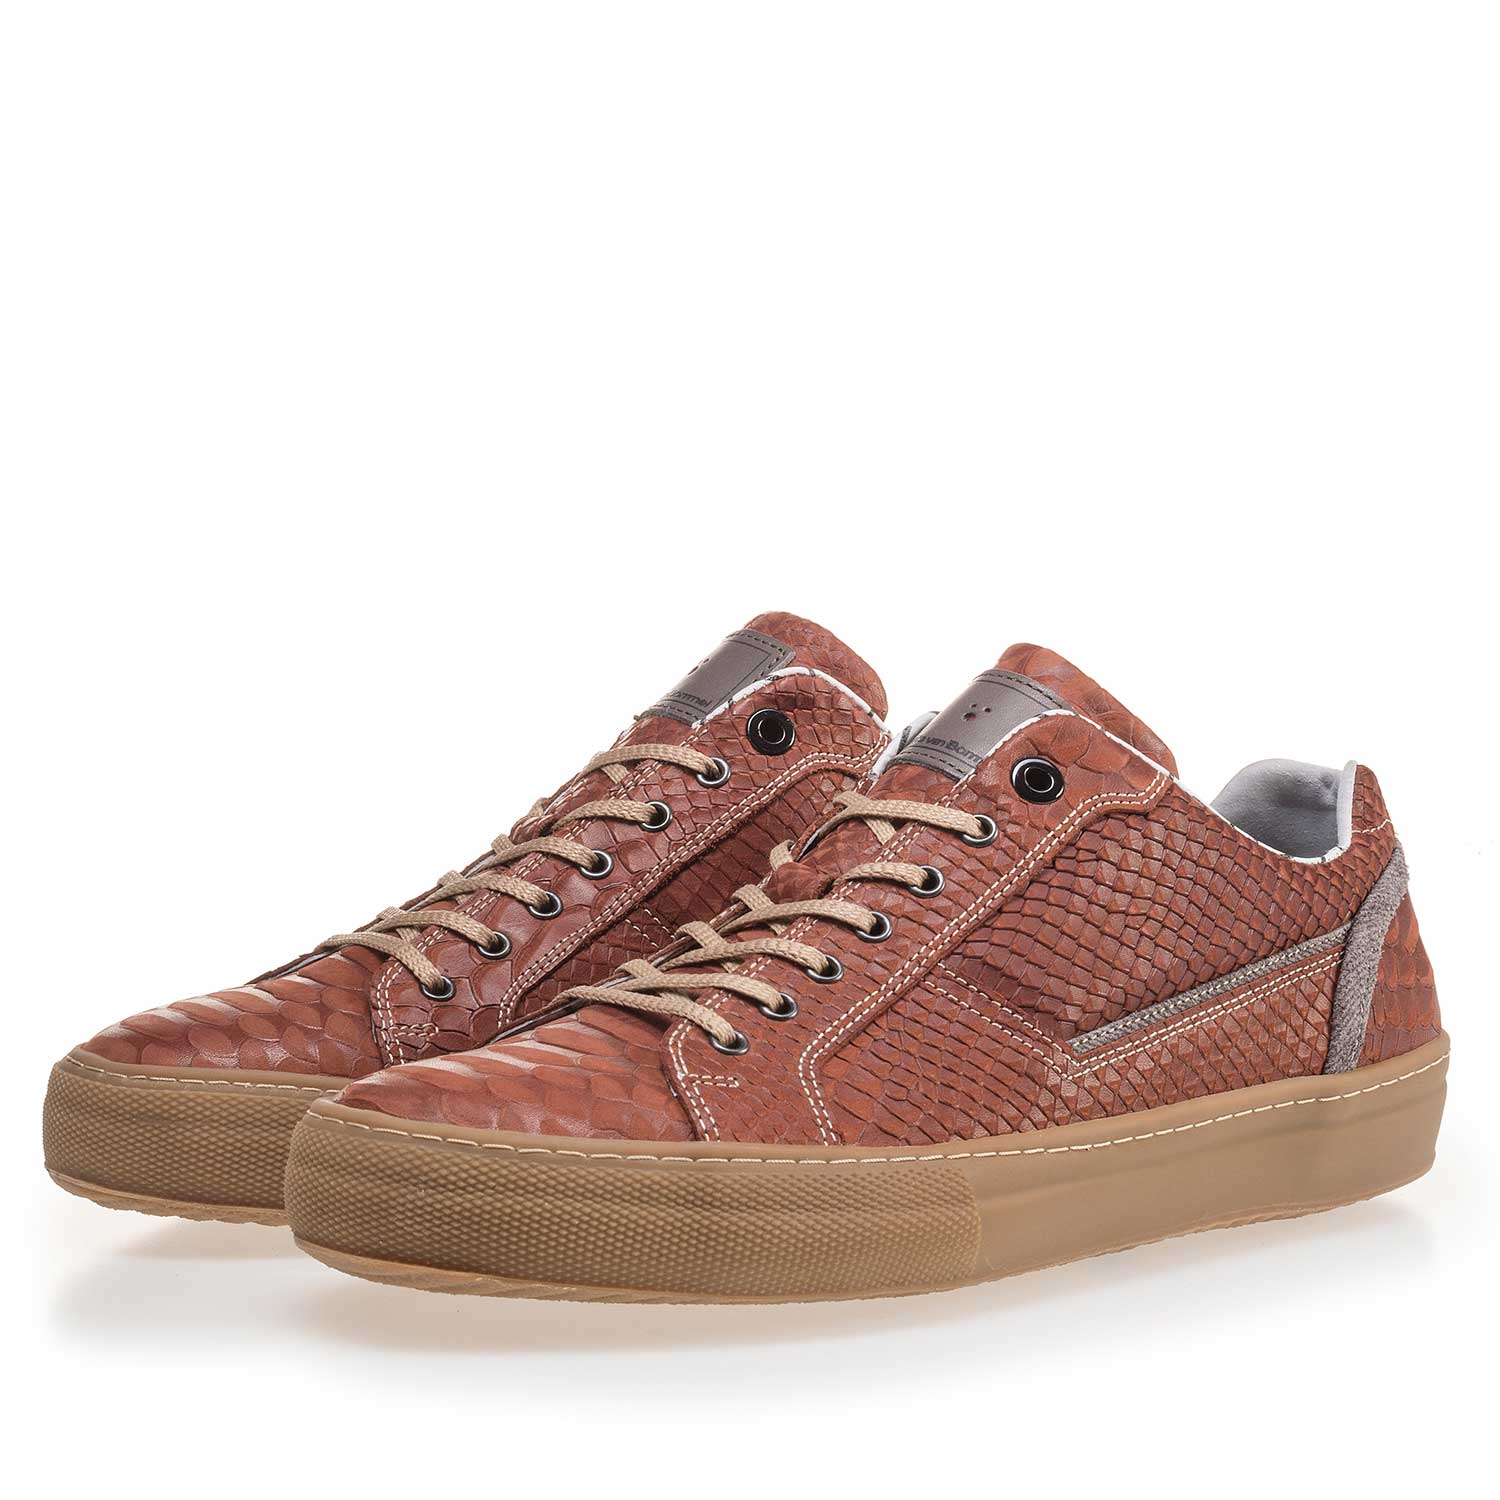 14448/13 - Cognac-coloured leather sneaker with a snake print